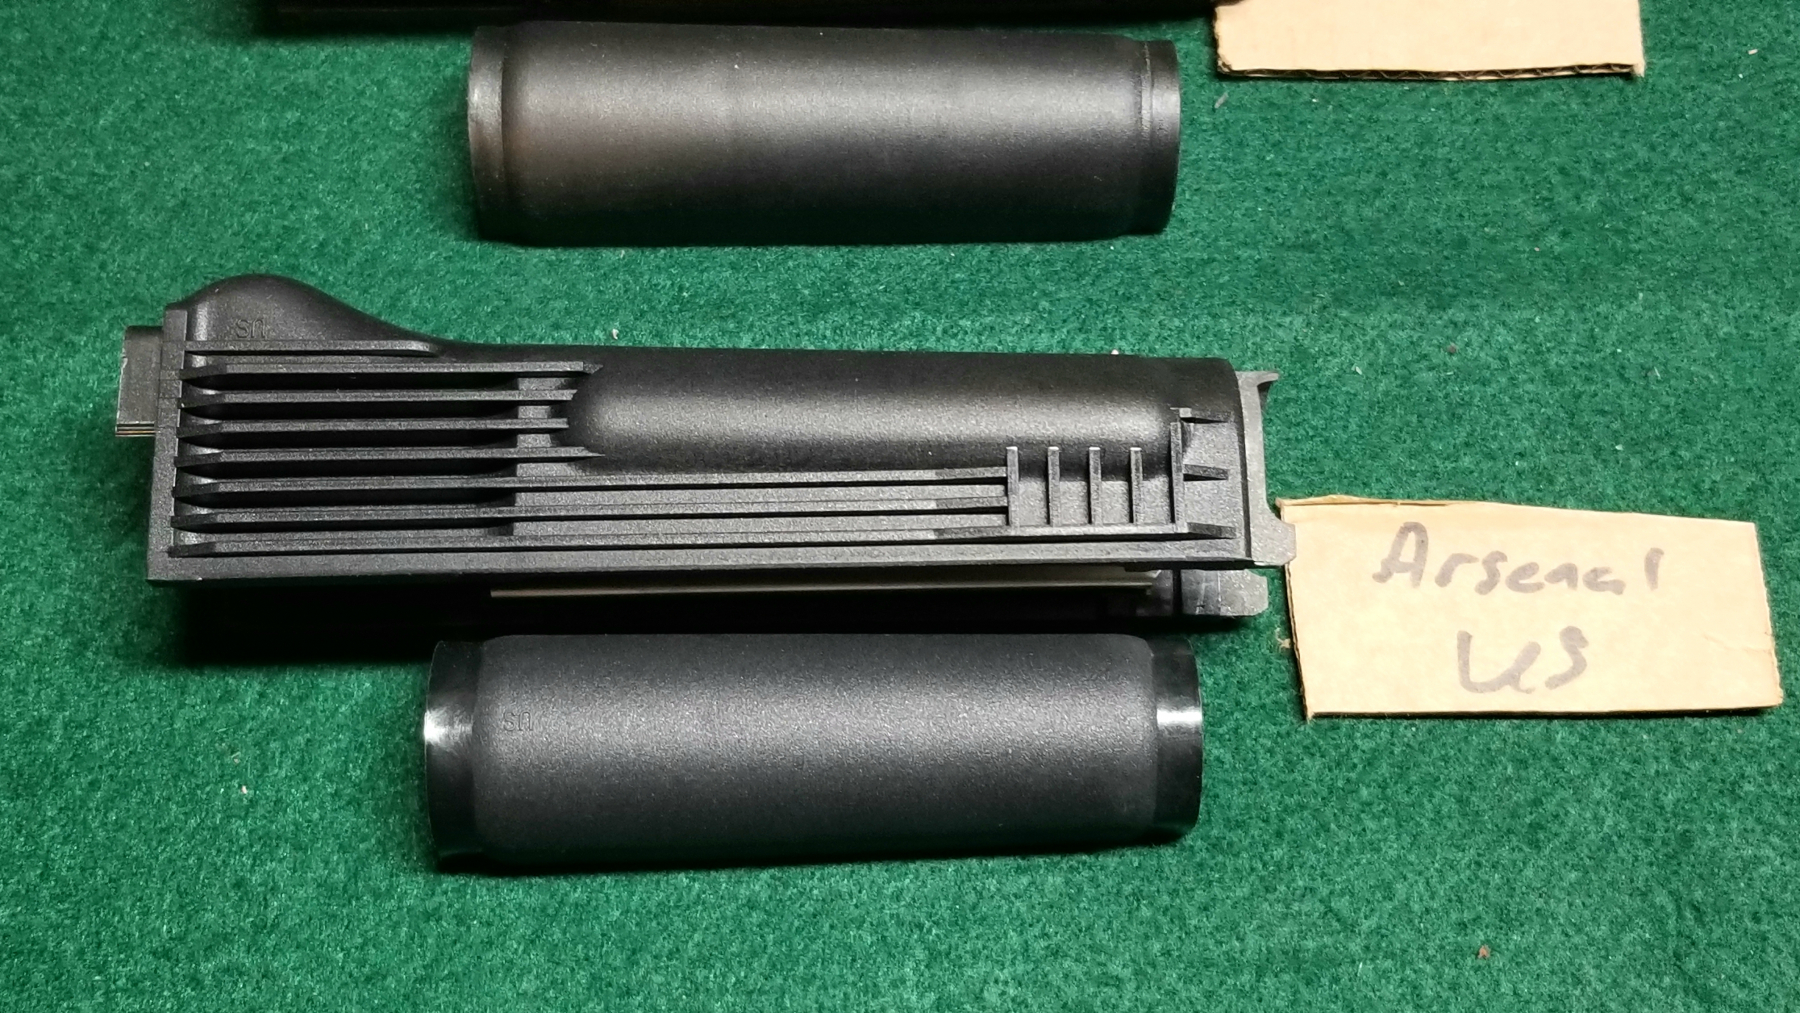 Arsenal handguard set side view.  The Izhmash gas tube cover is at the top.